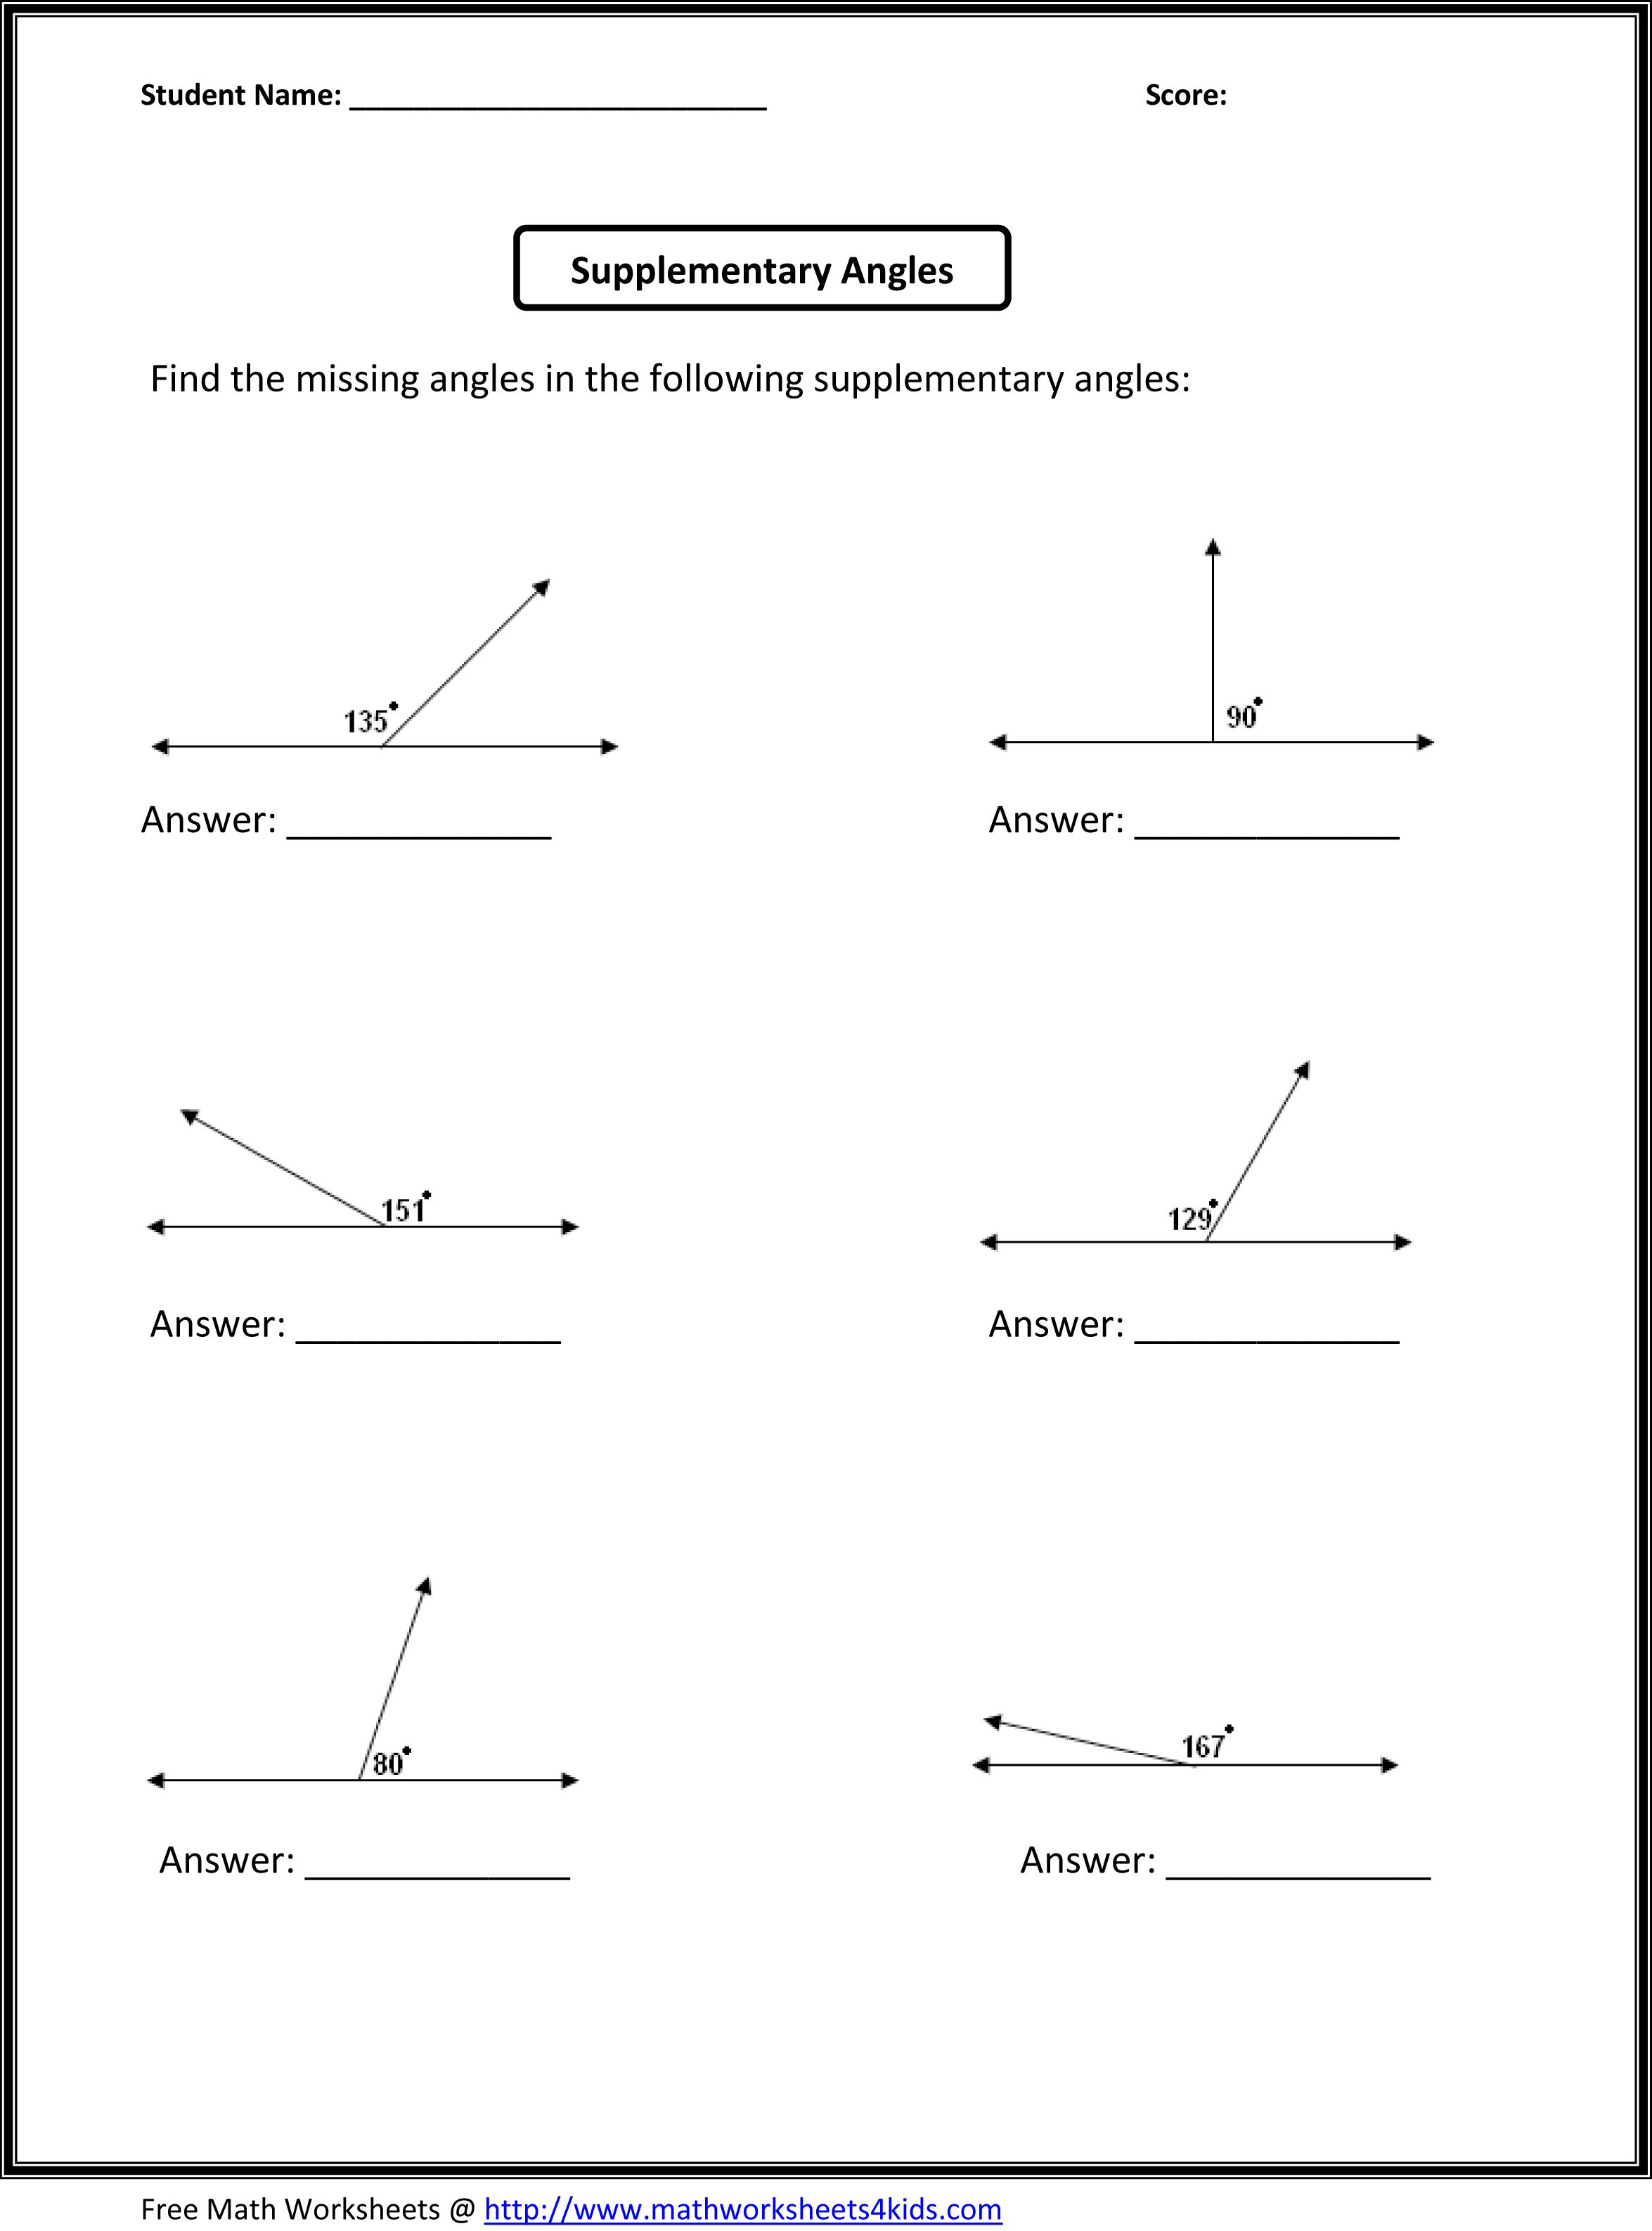 math worksheet : supplementary angles  classroom madness!  pinterest  math  : Math Angles Worksheet